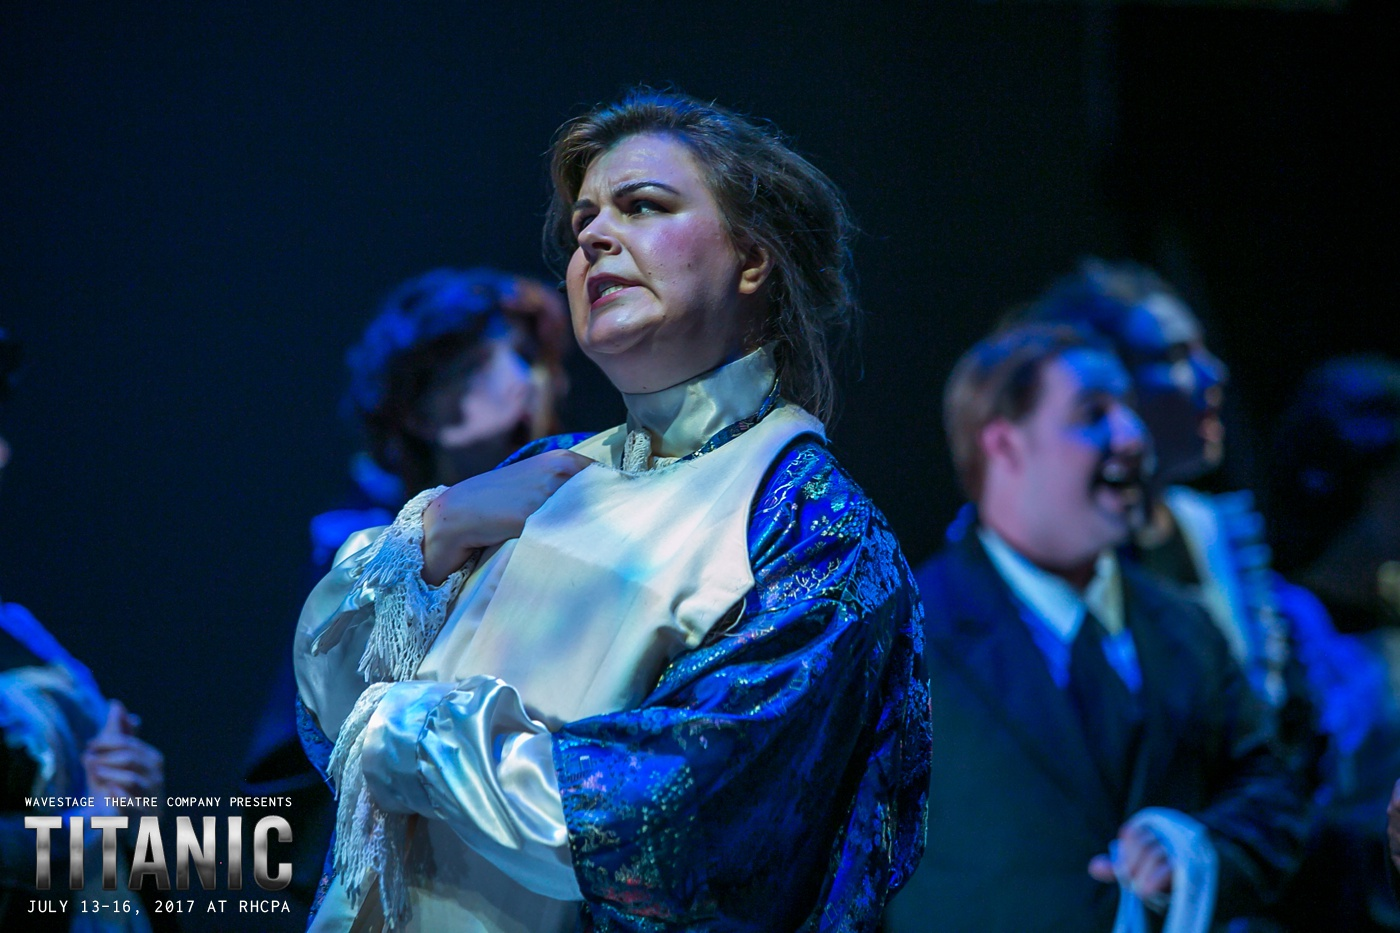 titanic-musical-richmond-hill-theatre-toronto_0059.jpg